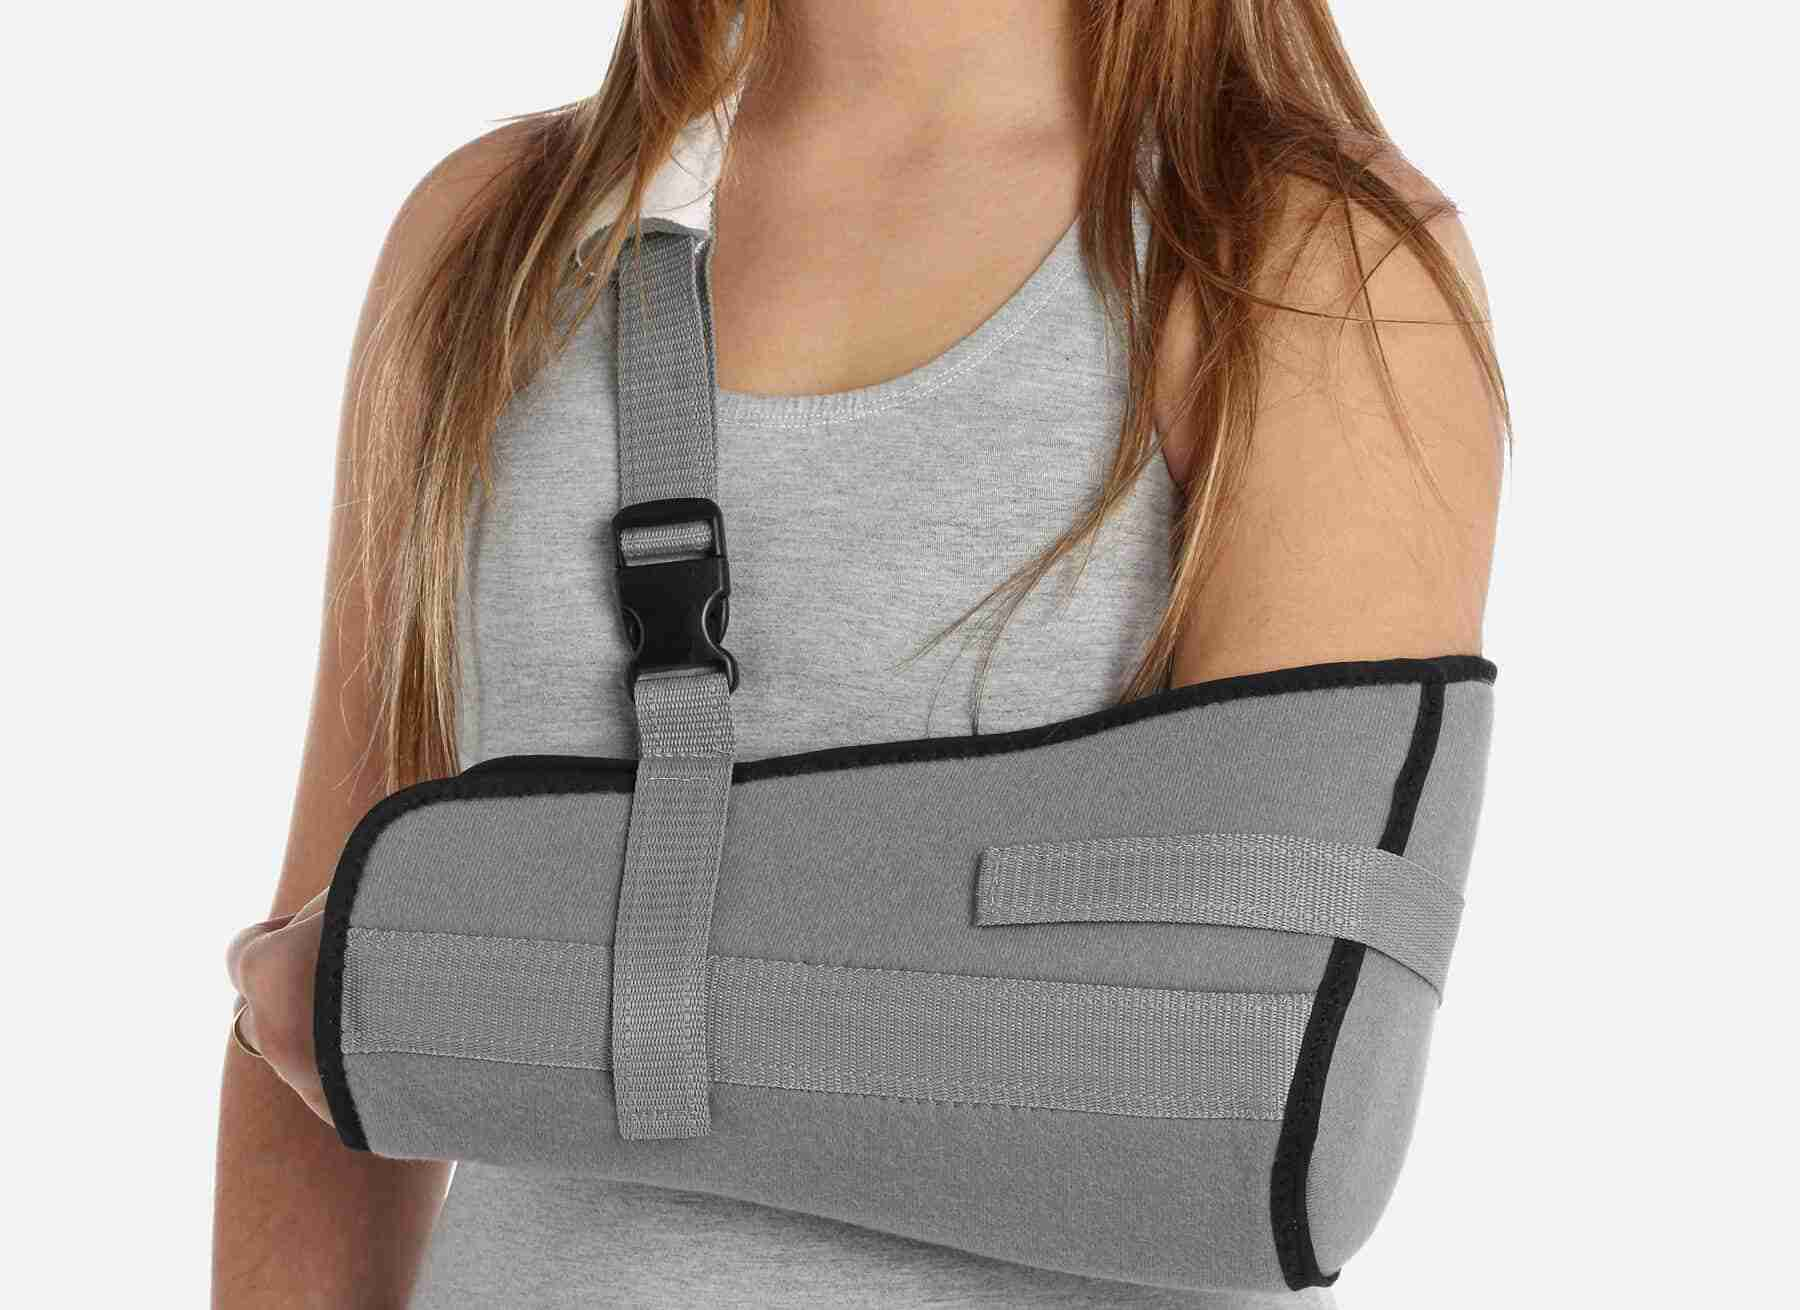 Rotator Cuff Surgery And Shoulder Surgery Recovery Tips 2018